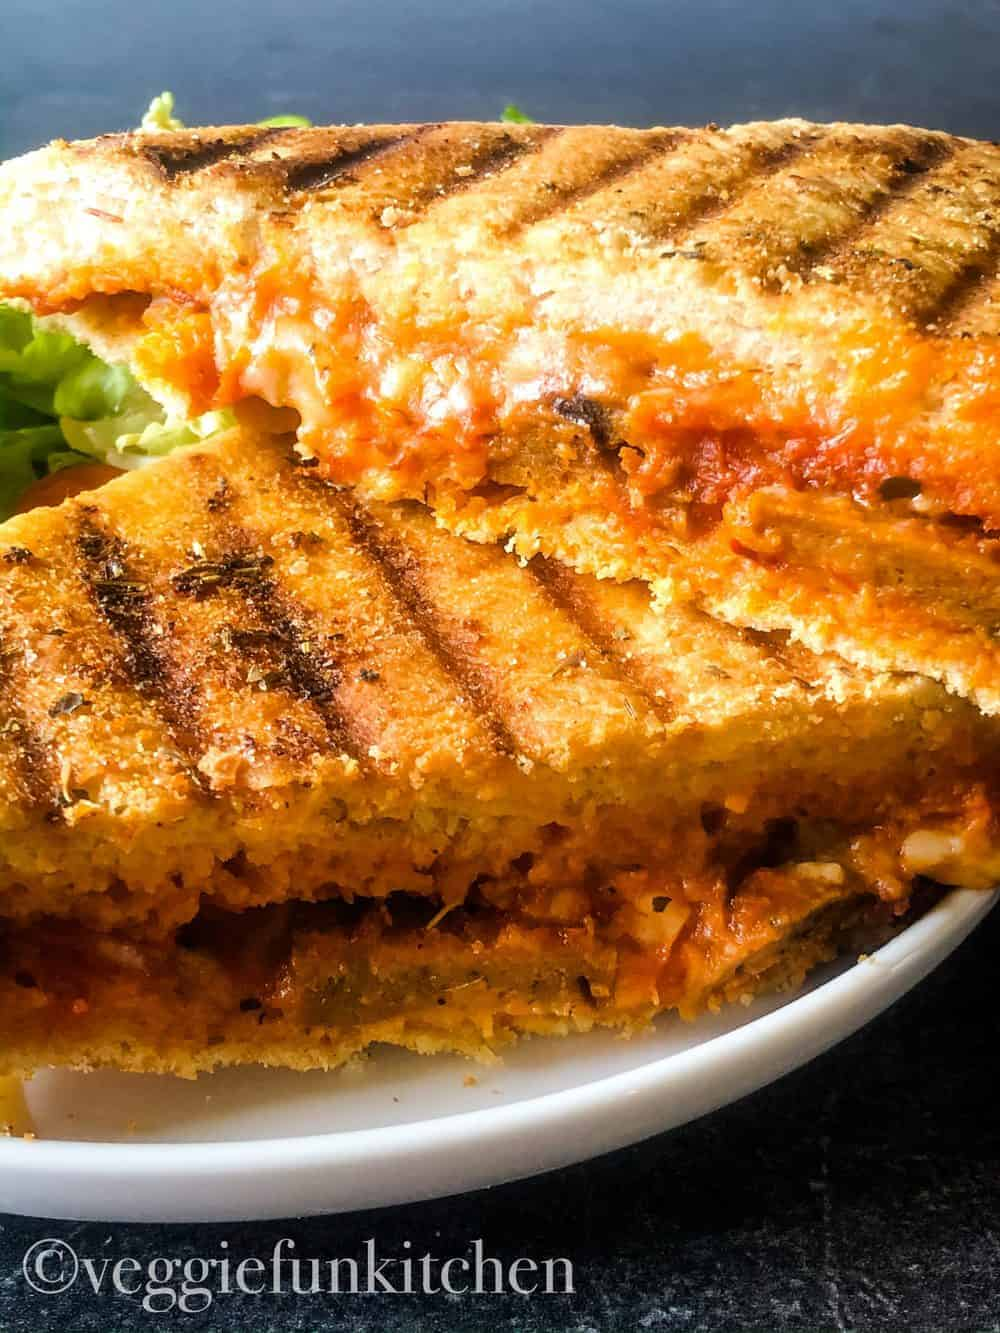 two pizza panini halves on white plate